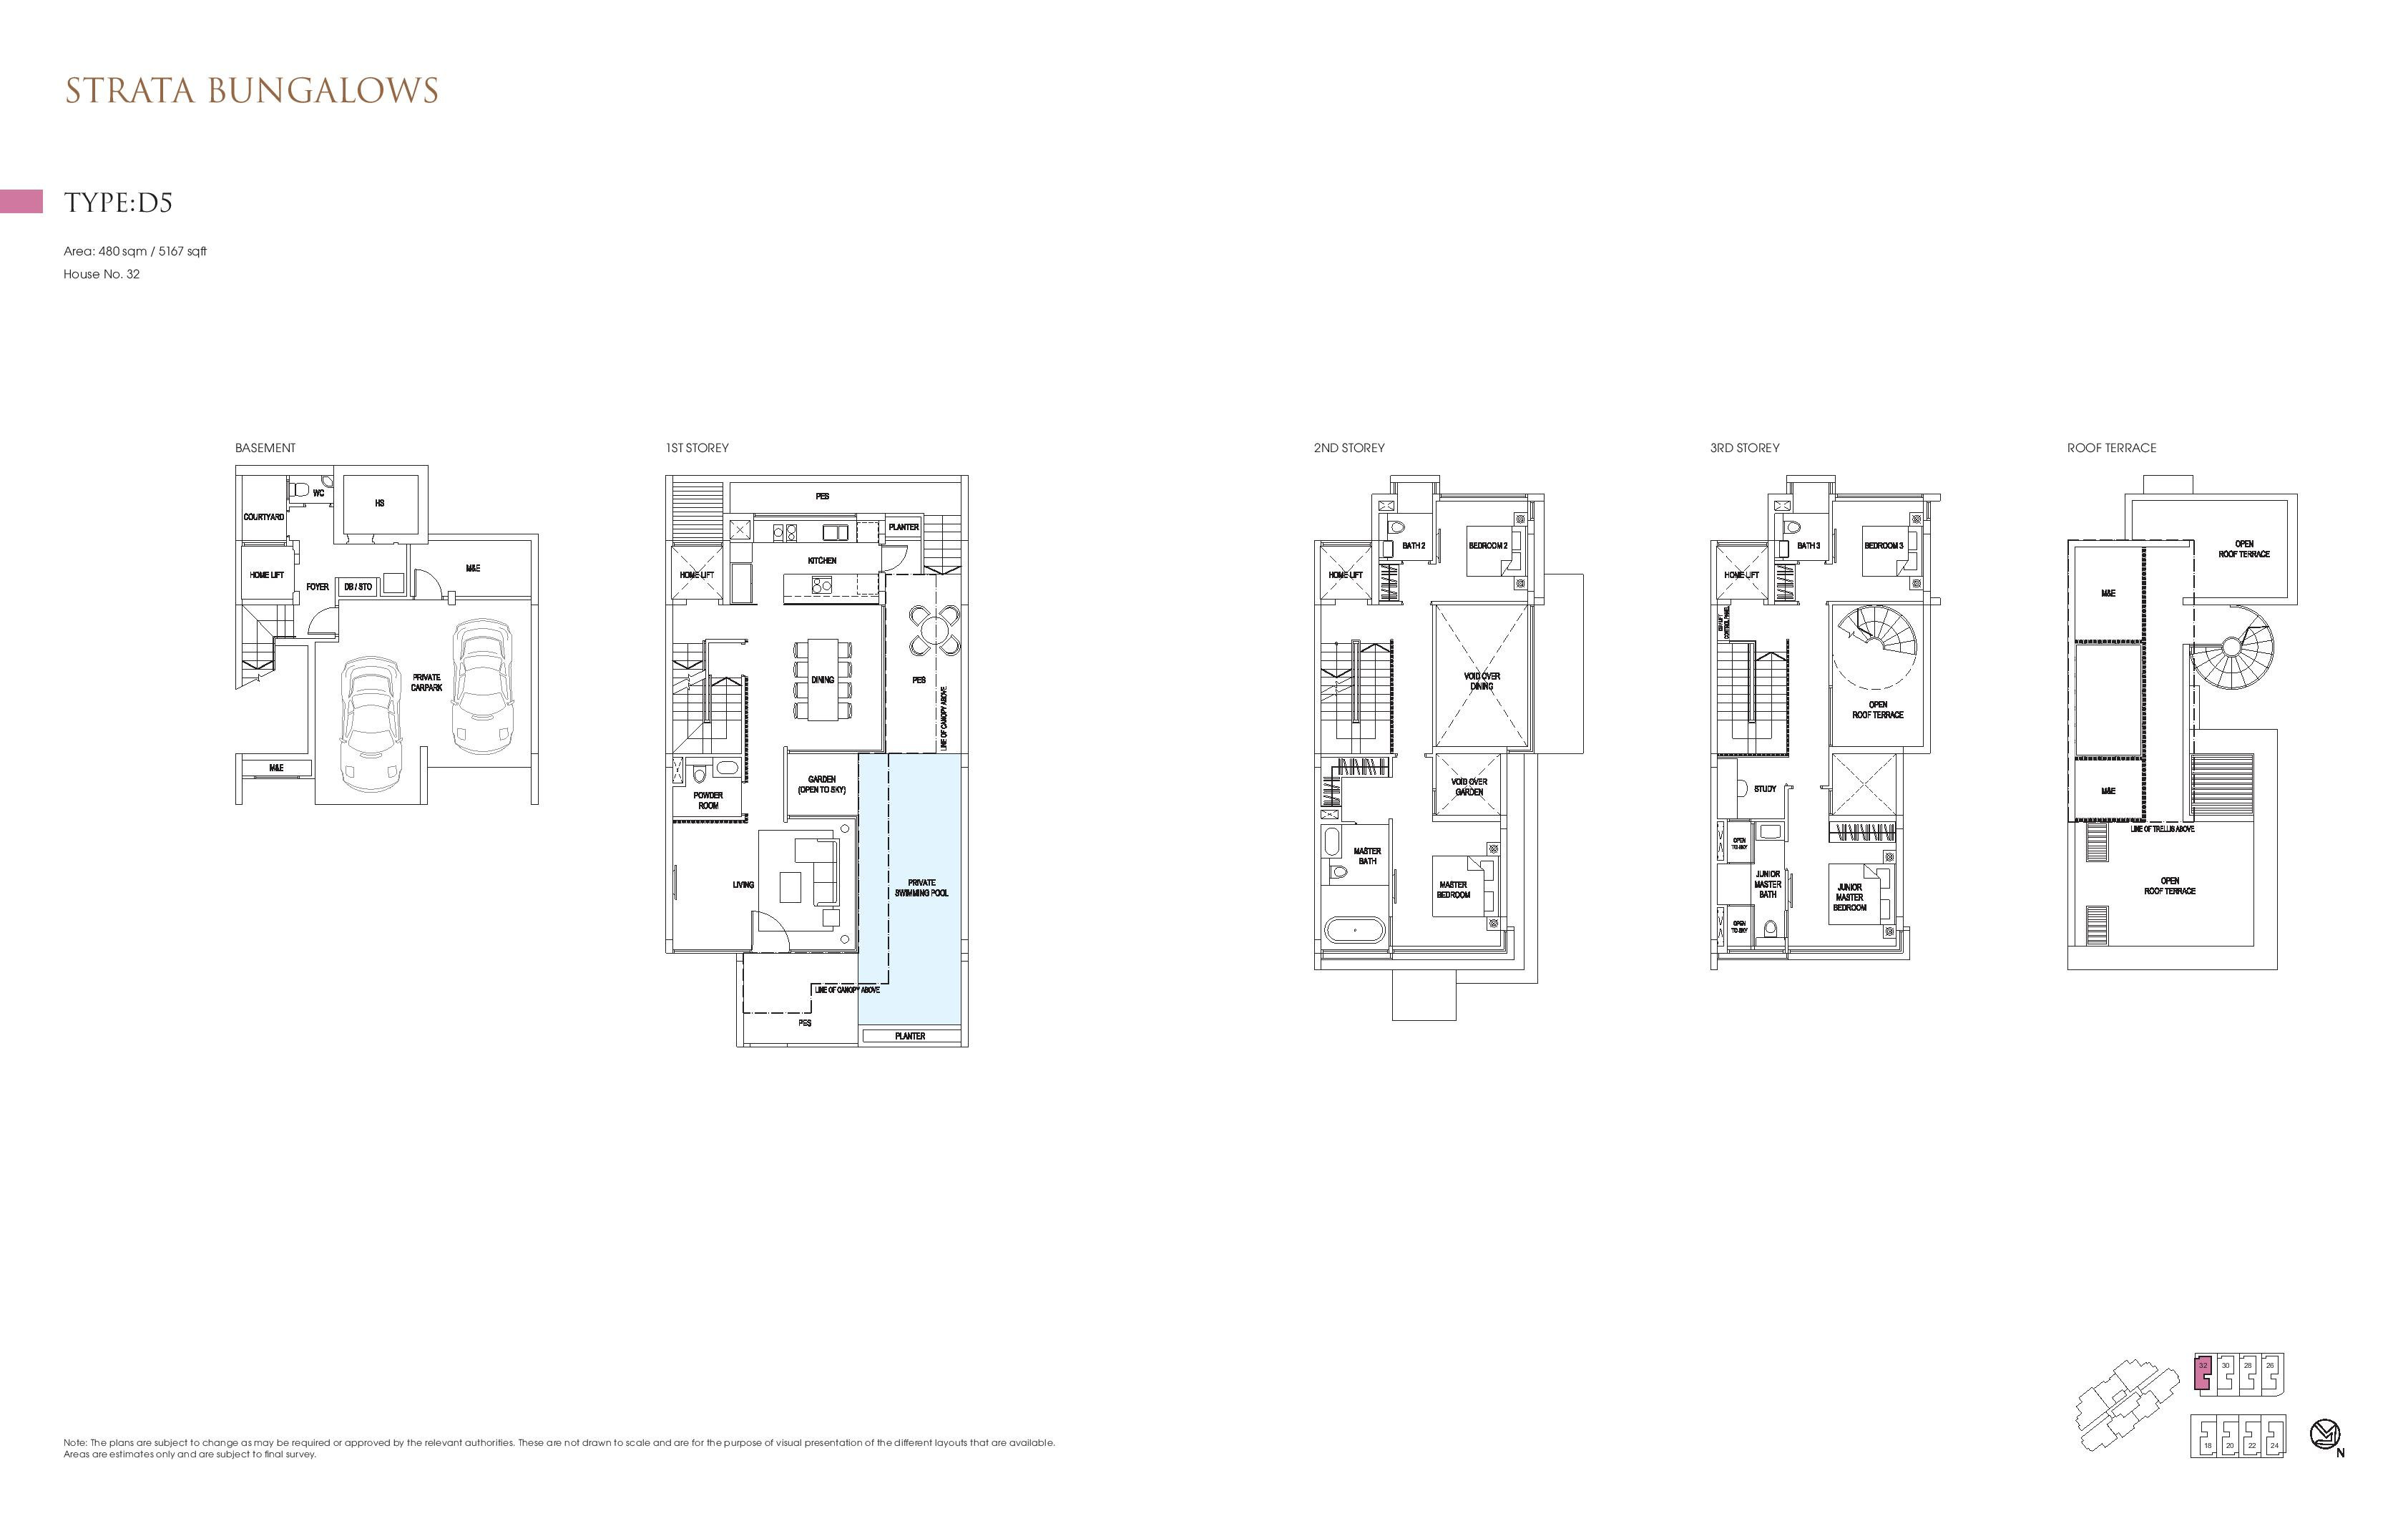 Goodwood Grand Strata Bungalows Type D5 Floor Plans